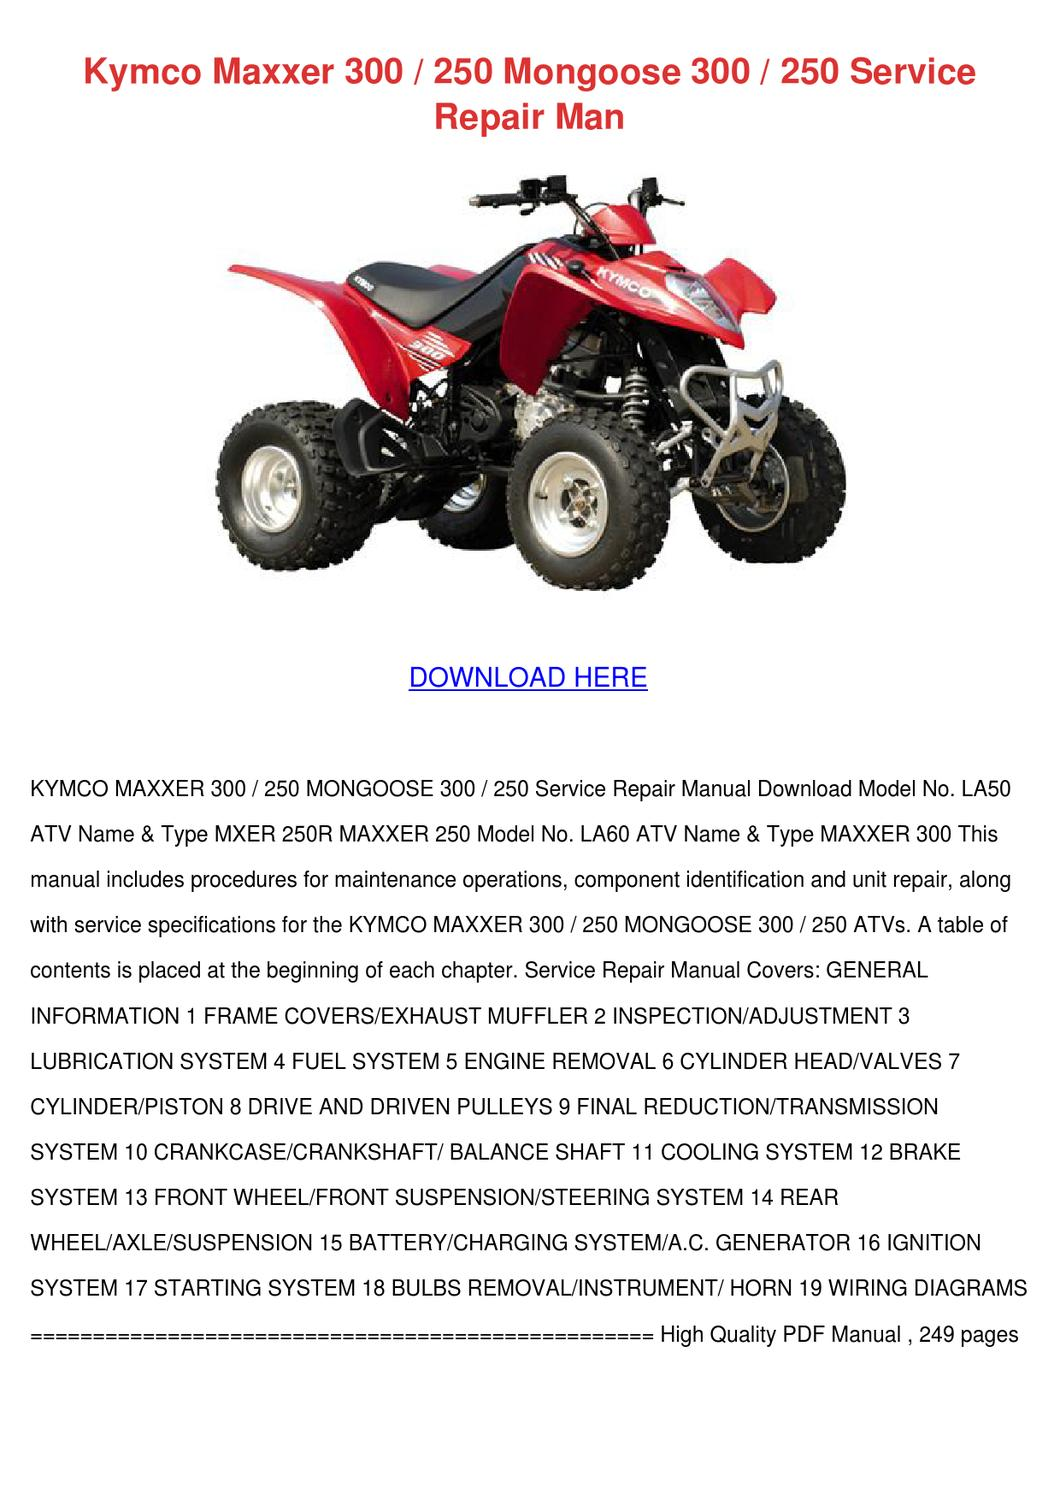 3FBD9 Kymco Mongoose 250 Wiring Diagram | Wiring Resources on kymco mxu 375, kymco agility 50cc moped, kymco mxu 300, kymco mxu 250, kymco atv, kymco mxu 150, kymco mxu 450i, kymco mxu 500, kymco utv, kymco 90 aftermarket parts, kymco side by side parts, kymco 50cc scooter top speed, kymco uxv 500,